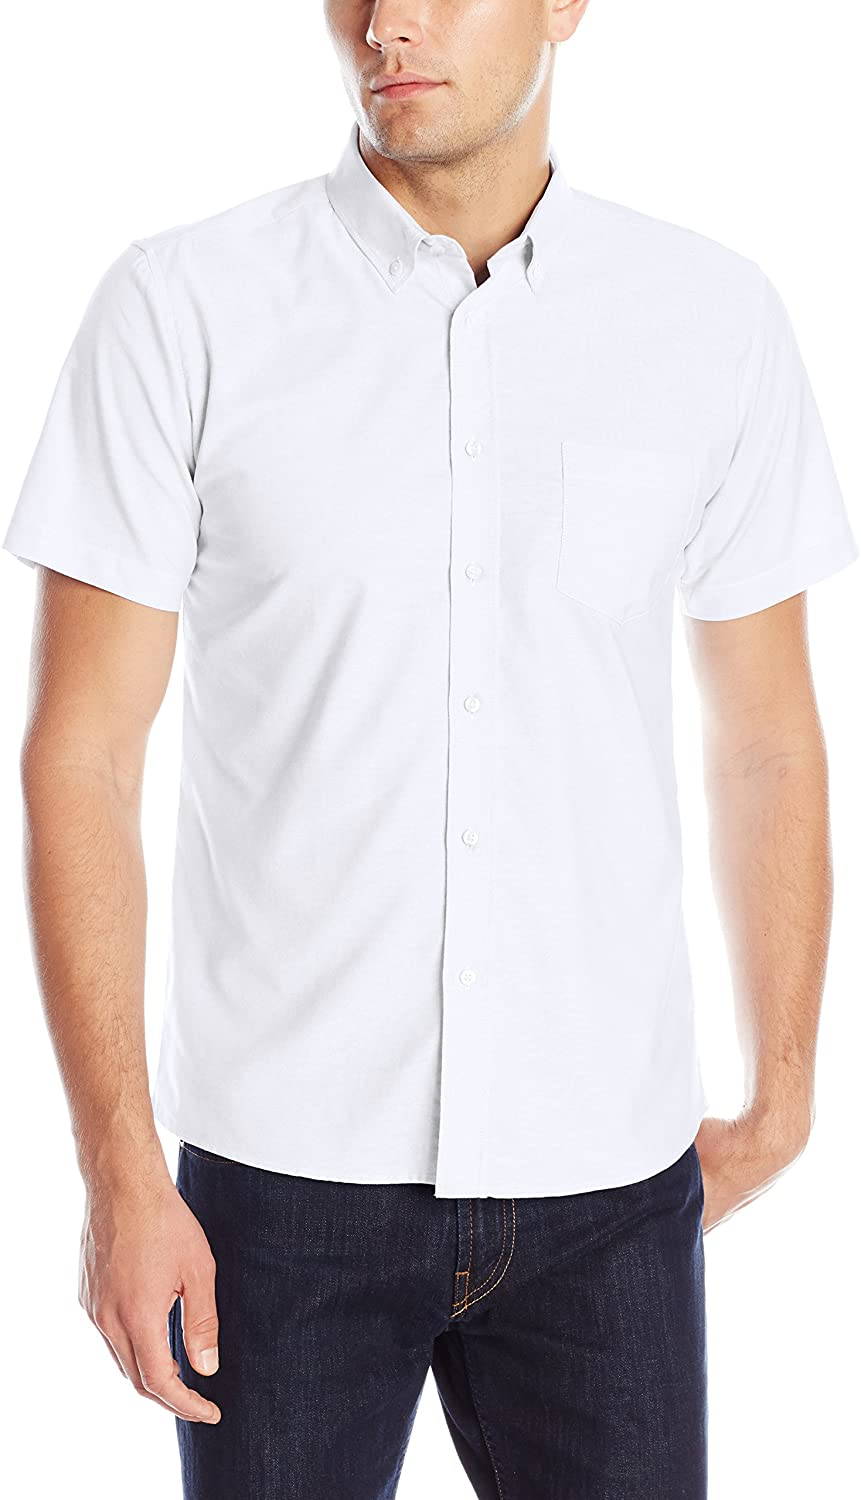 IZOD Uniform Young Men's Short Sleeve Button-down Oxford Shirt at  Men's Clothing store